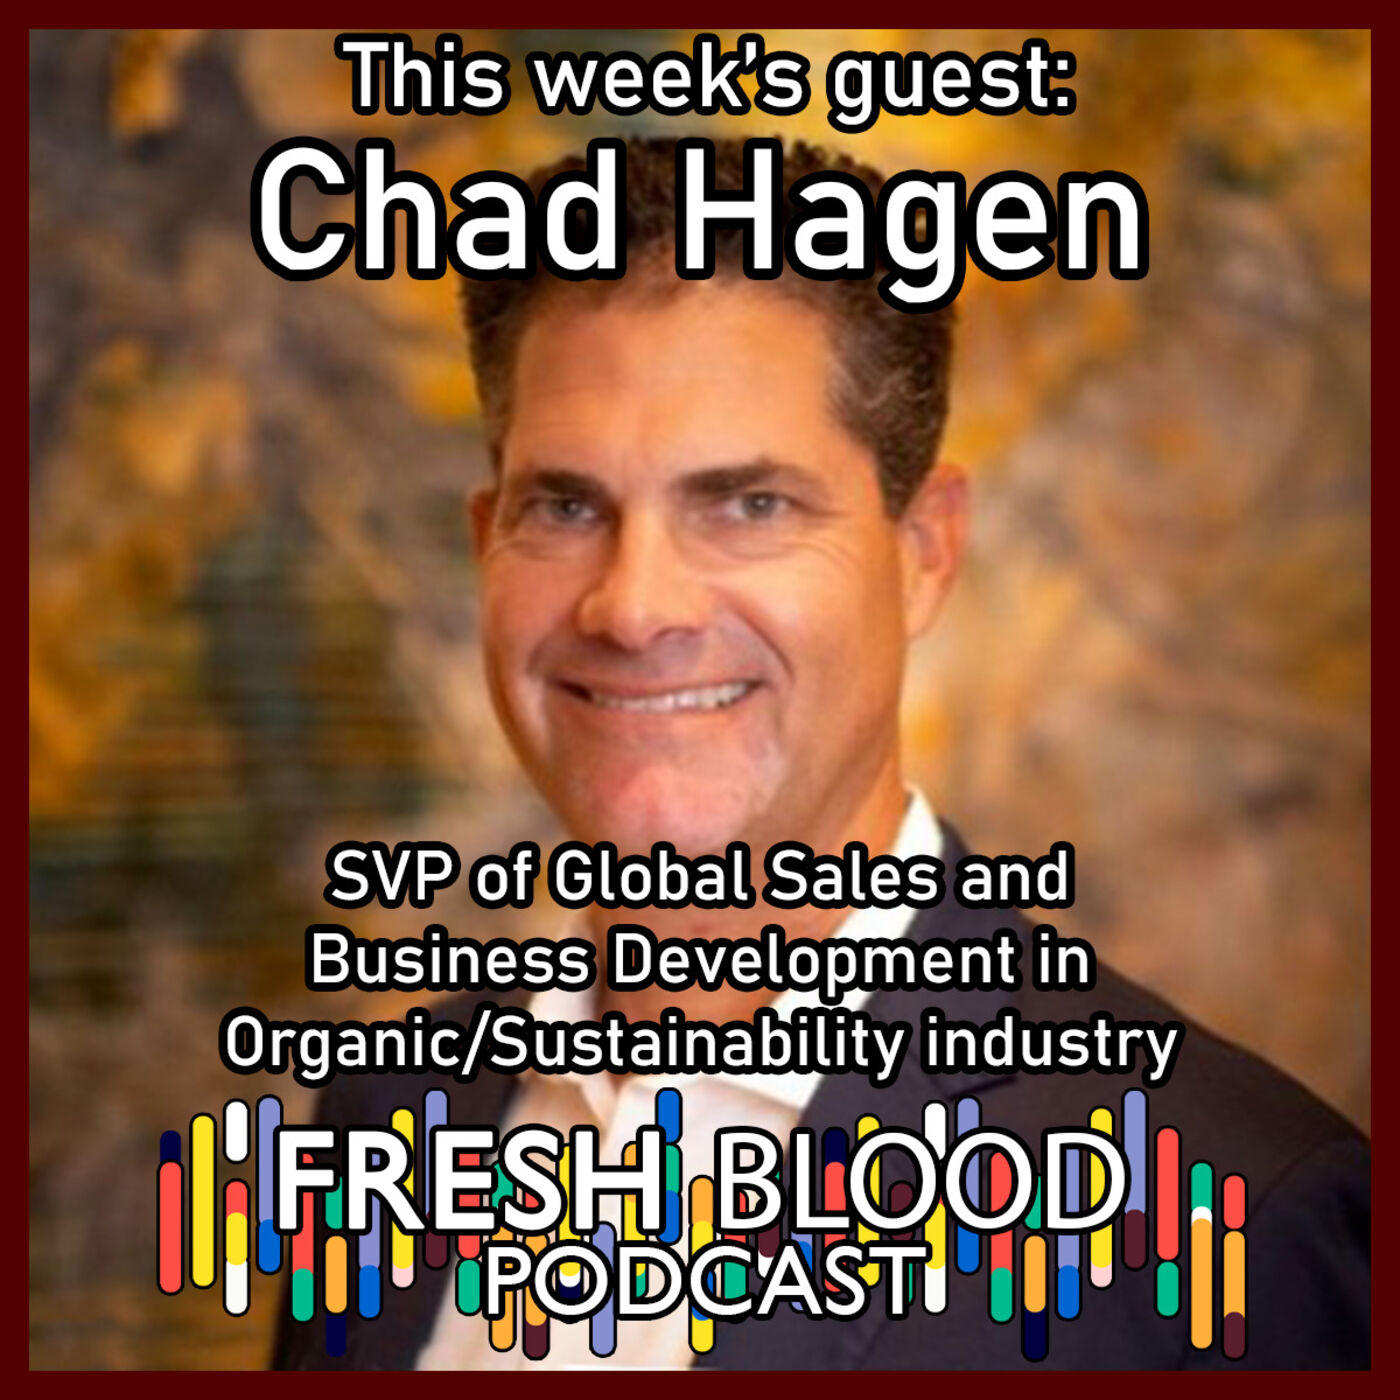 054 - Chad Hagen – SVP of Global Sales and Business Development in Organics/Sustainability Industry